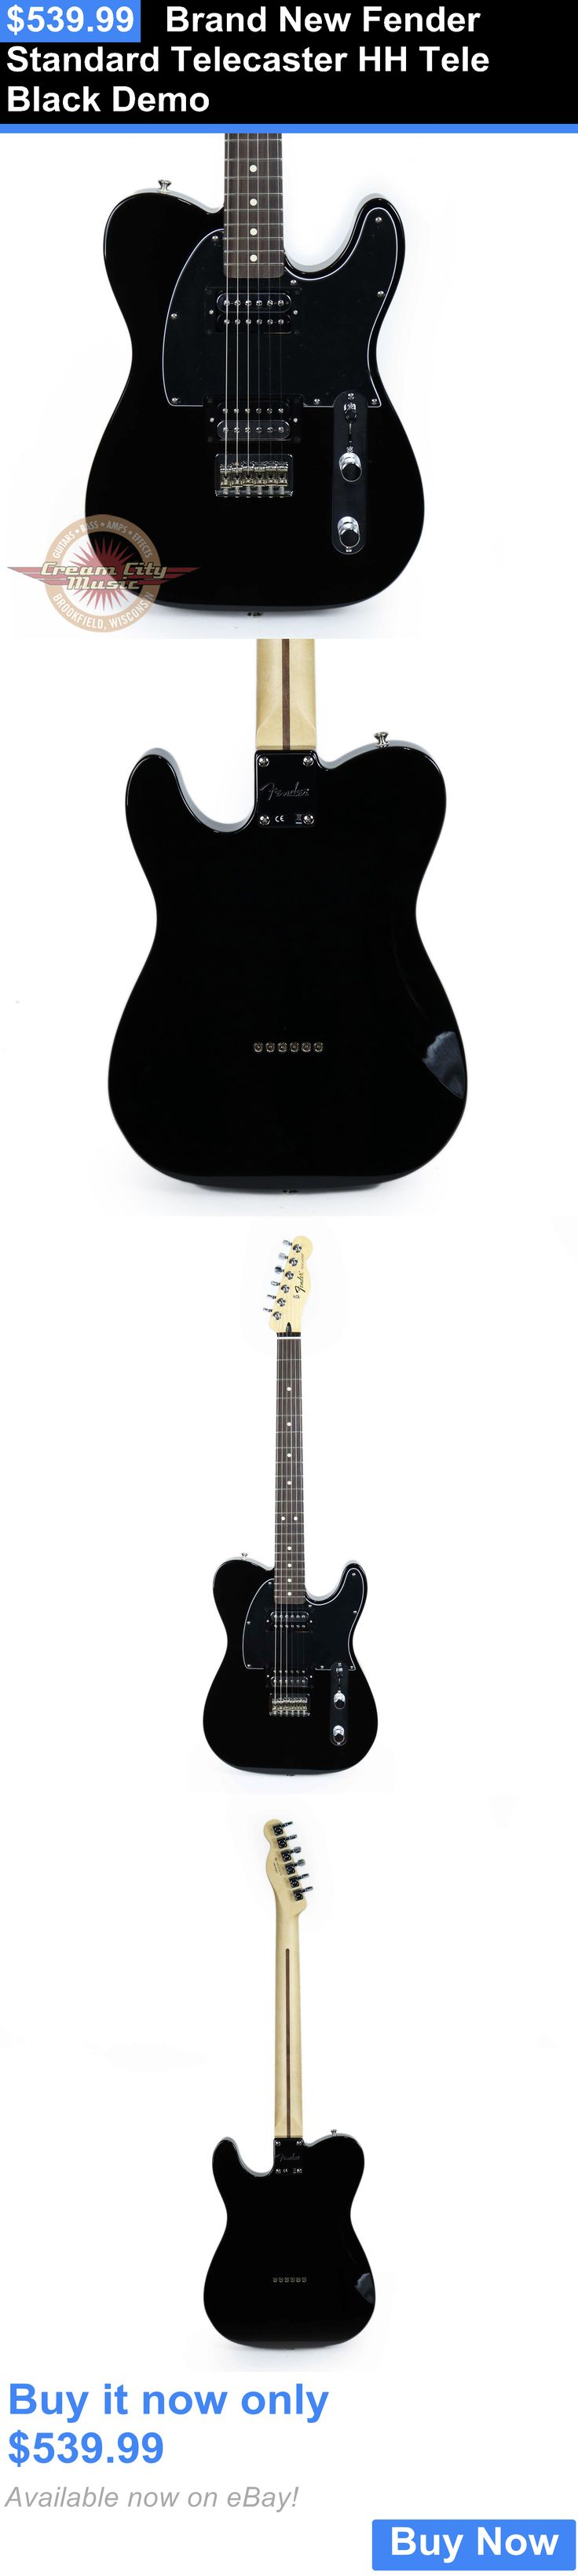 musical instruments: Brand New Fender Standard Telecaster Hh Tele Black Demo BUY IT NOW ONLY: $539.99